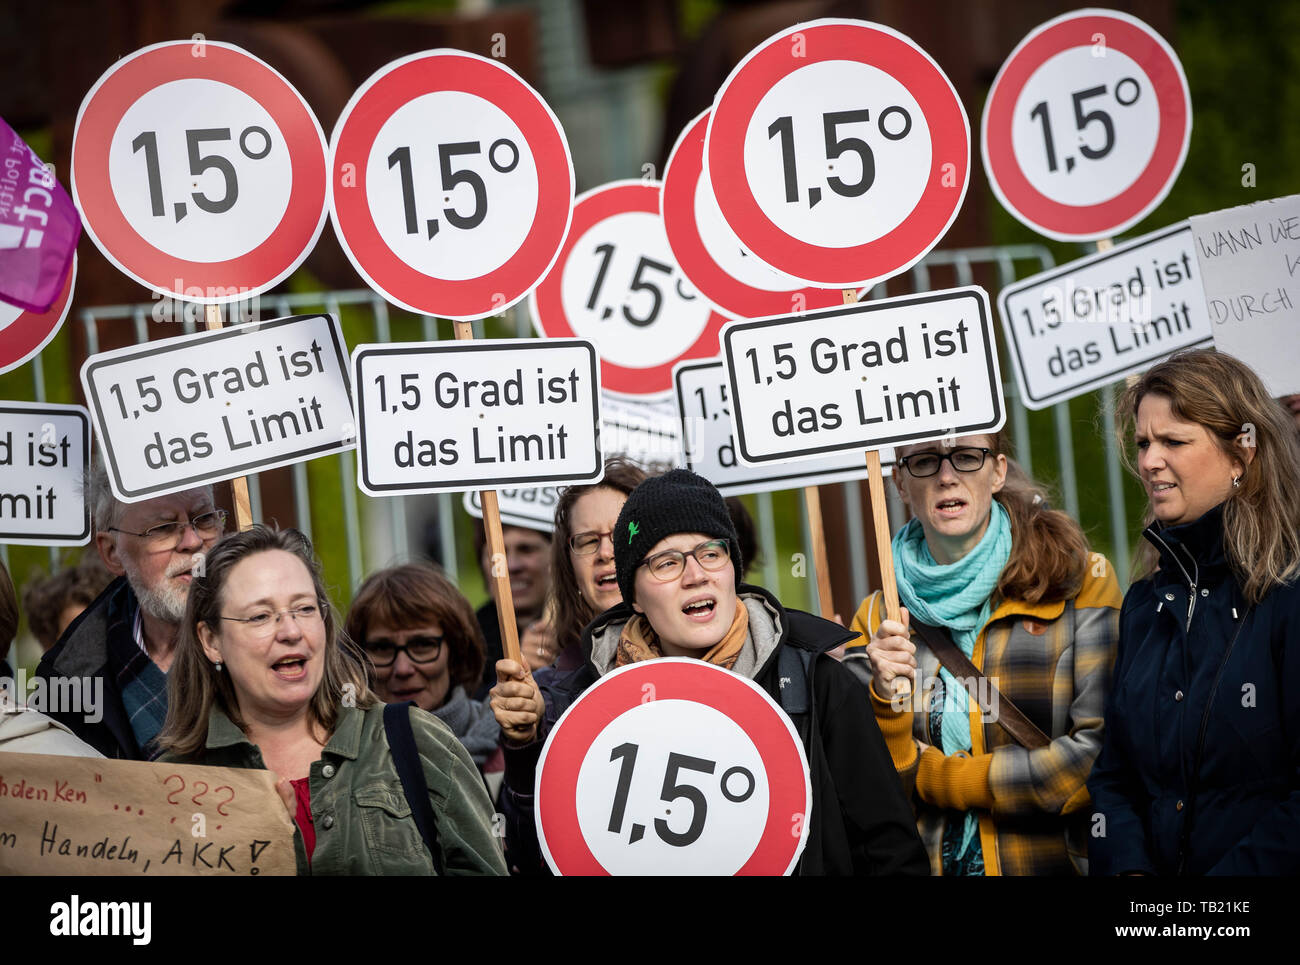 Berlin, Germany. 29th May, 2019. Activists from the Campact campaign organisation stand with signs at 1.5 degrees at a rally that criticises the Union's lack of climate protection. The Climate Cabinet meets at the same time in the Chancellor's Office. Credit: Michael Kappeler/dpa/Alamy Live News Stock Photo